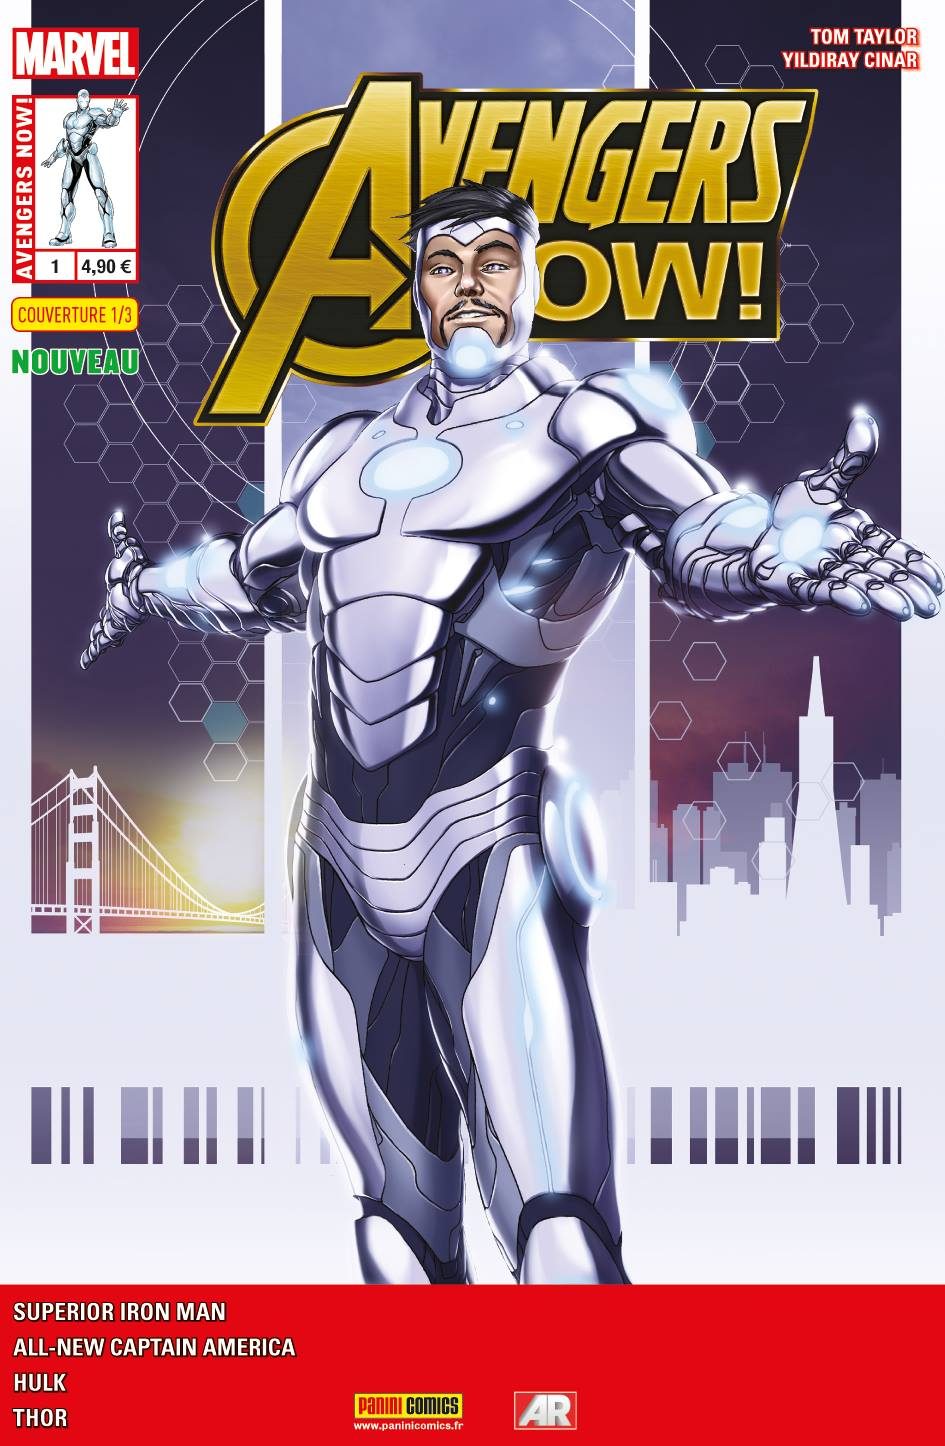 AVENGERS NOW 1 (Couv 1/3)